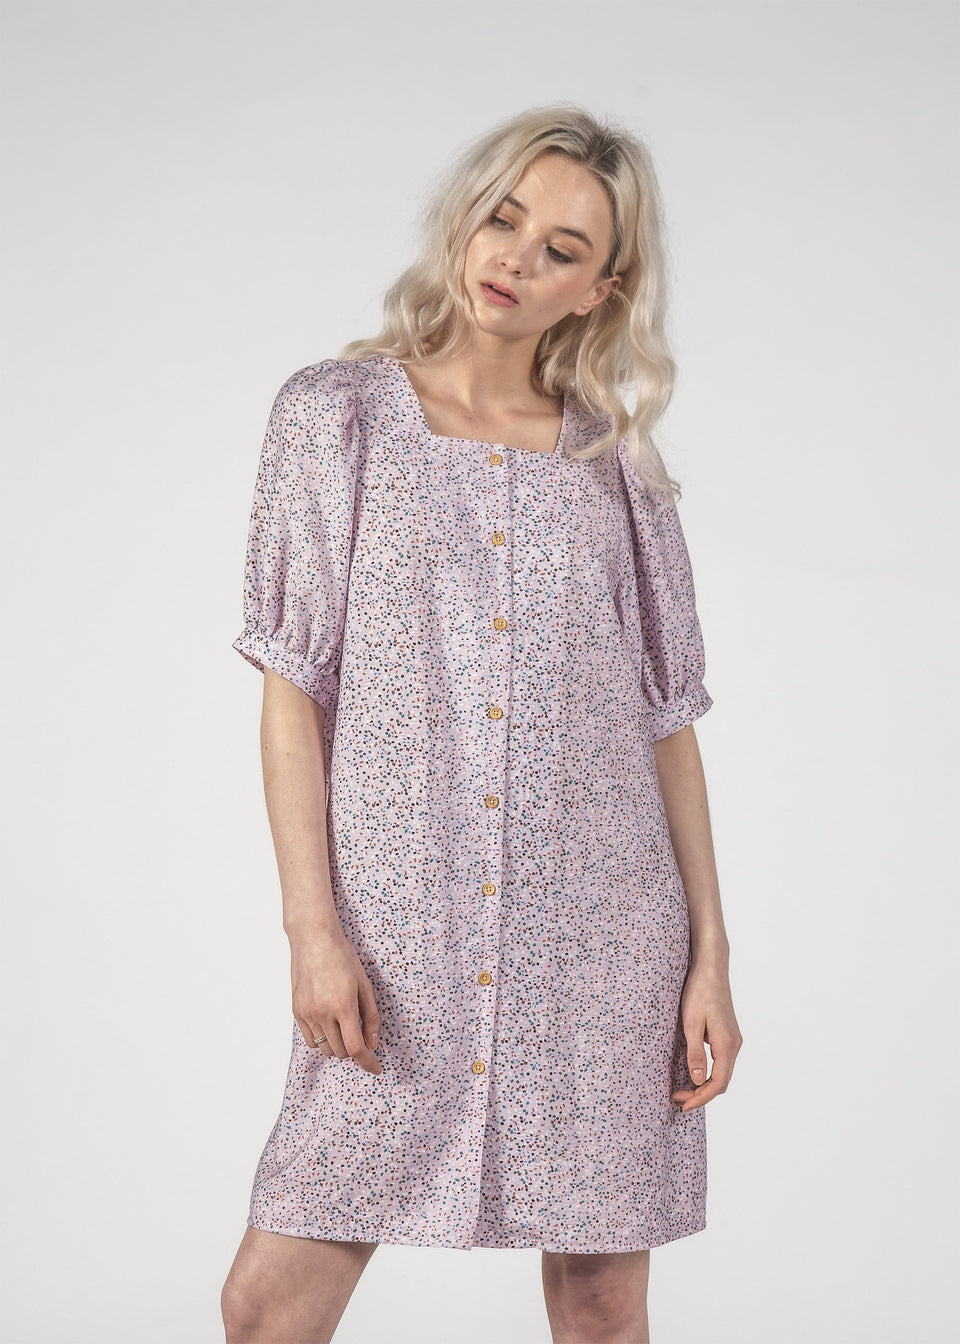 Thing Thing Small Talk Dress Lilak Speckle